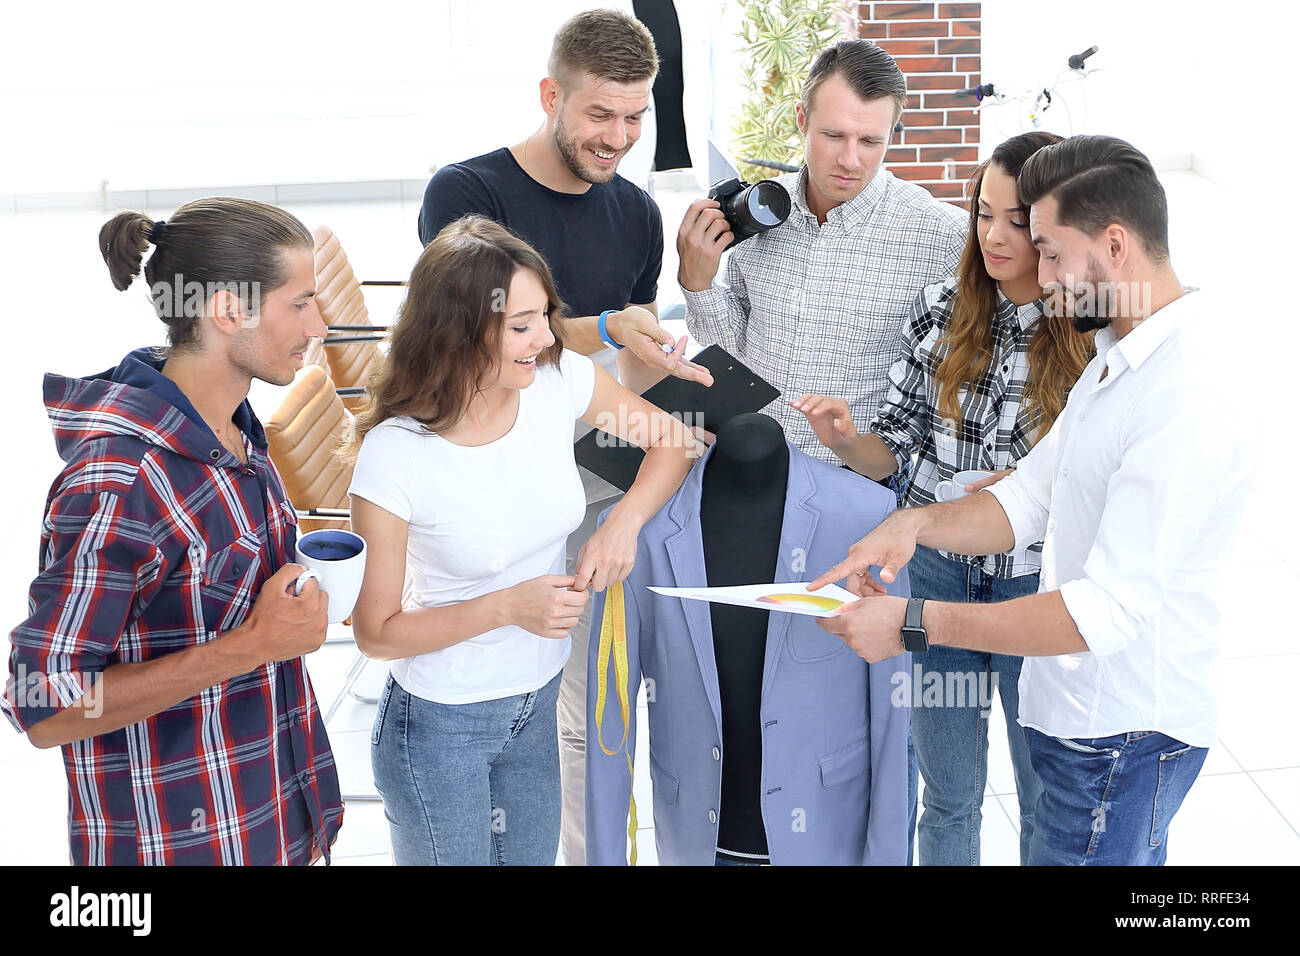 10f2f74b8a4 group of designers discussing new models of men s clothing. - Stock Image